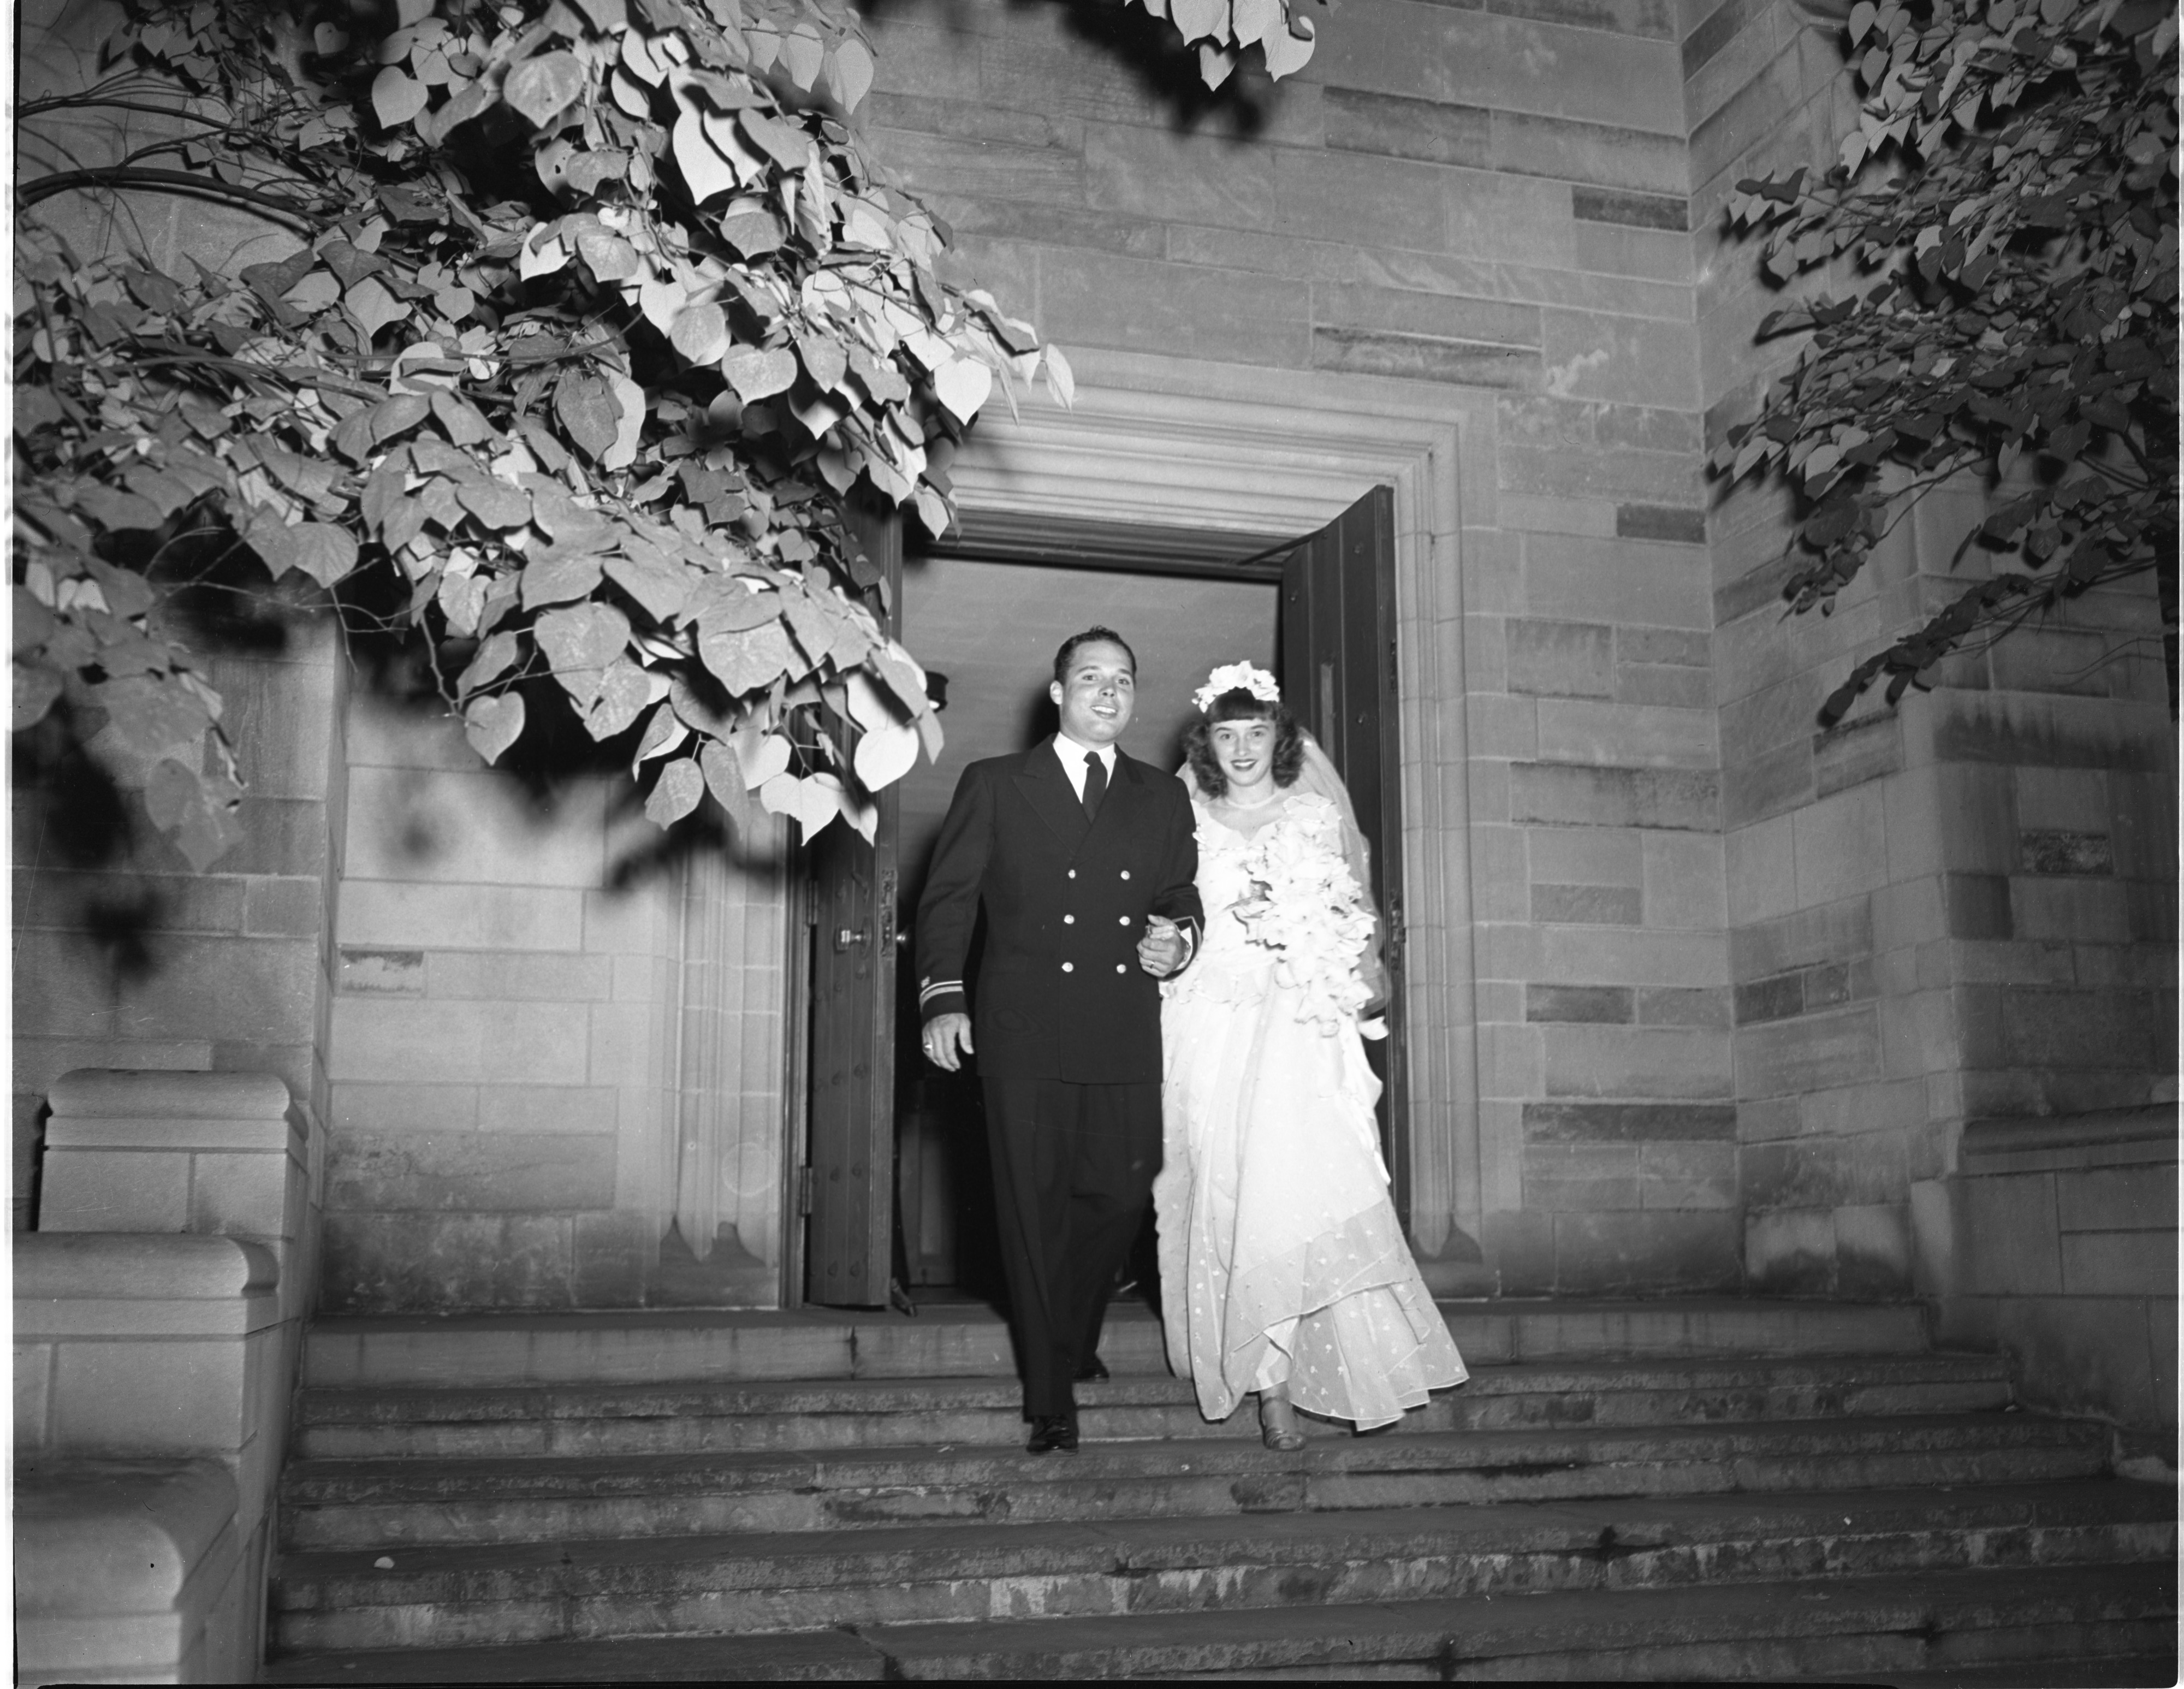 Newly Married Dorothy & Alvin Bek Leaving First Presbyterian Church - September 7, 1946 image